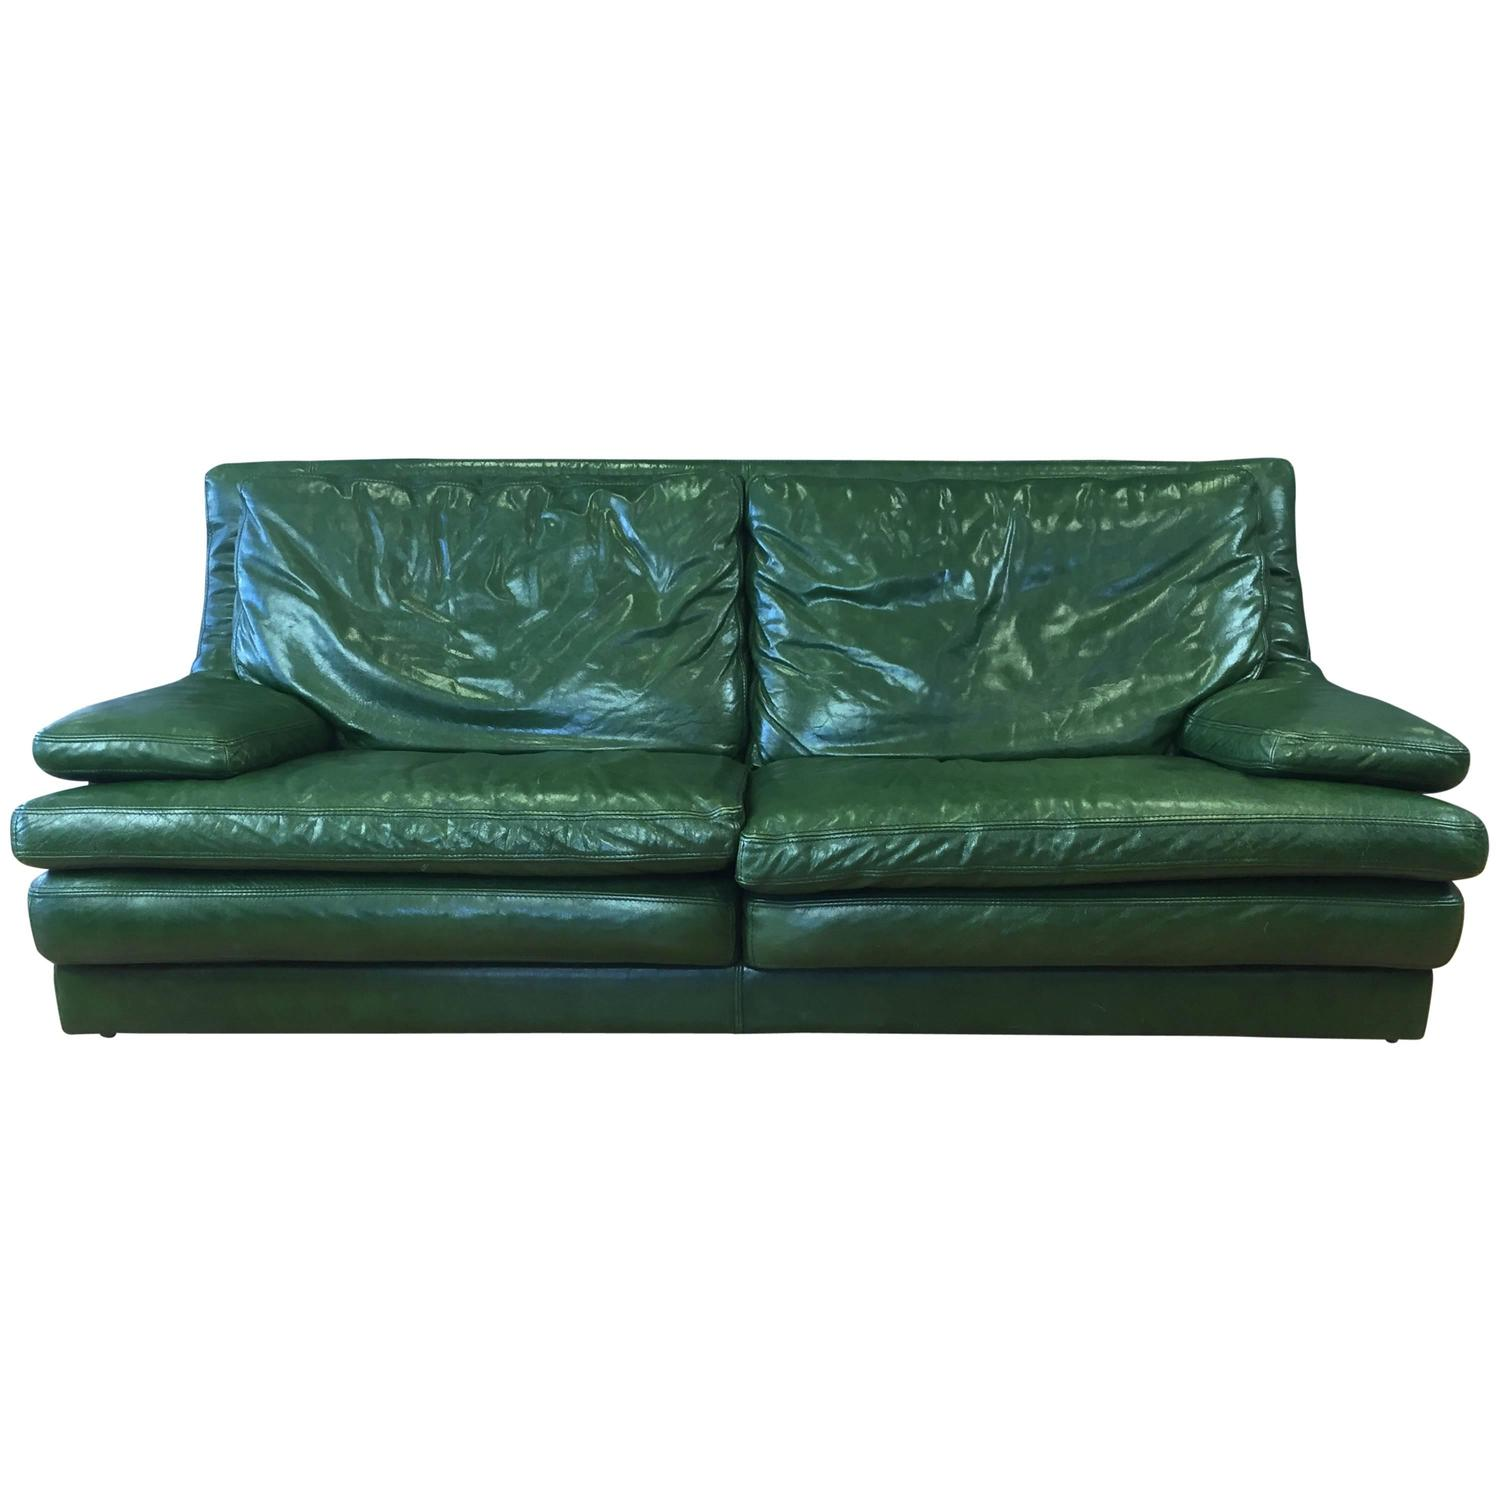 Vintage Roche Bobois Green Leather Sofa For Sale At 1stdibs